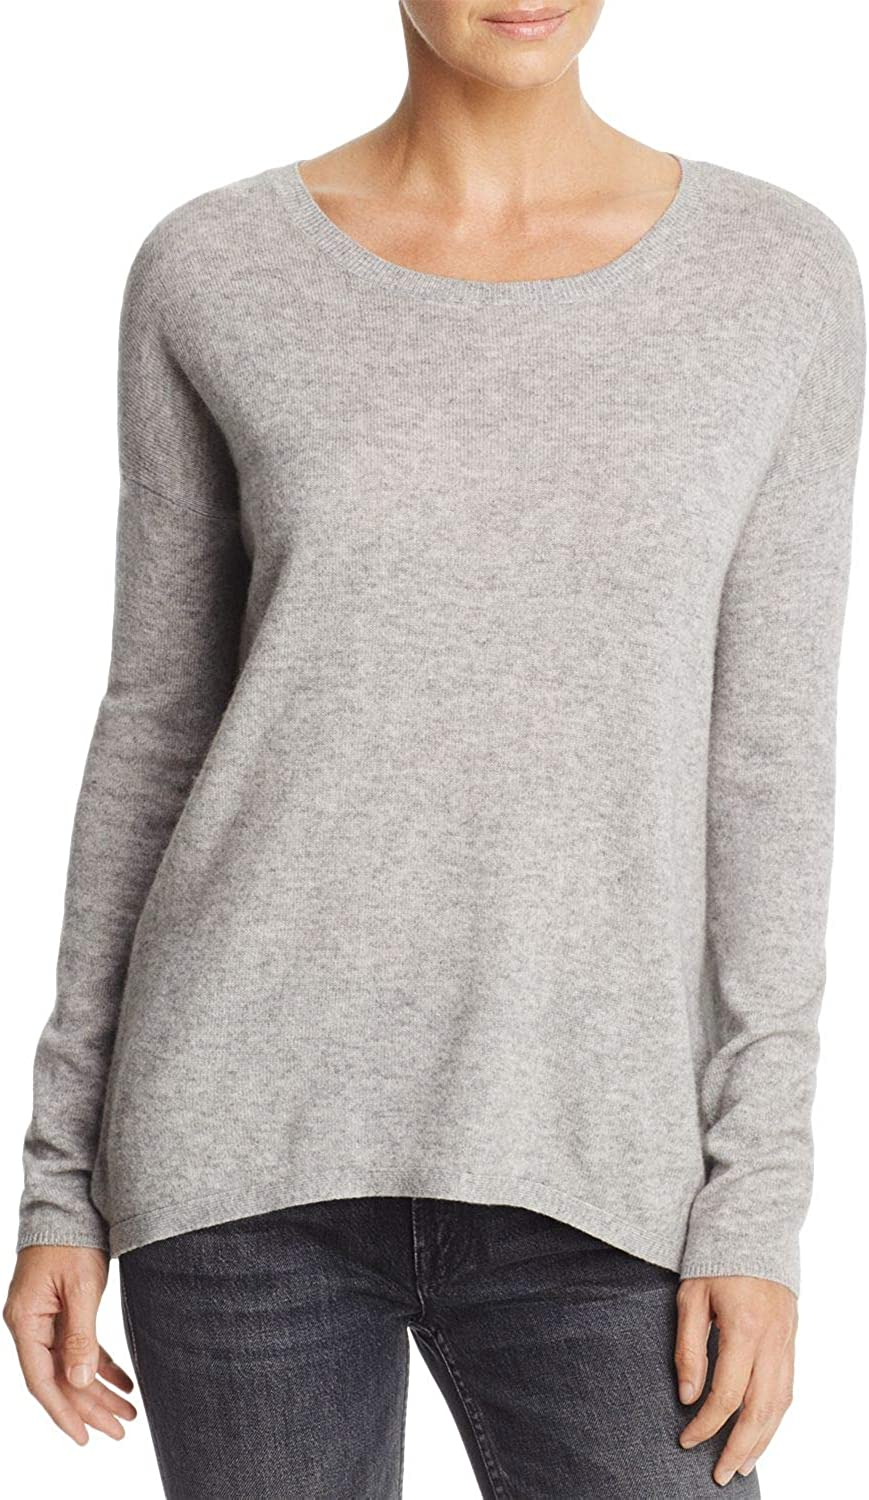 Joie Effie Crossback Wool-Cashmere Sweater, Ash Heather Gray, XX-Small